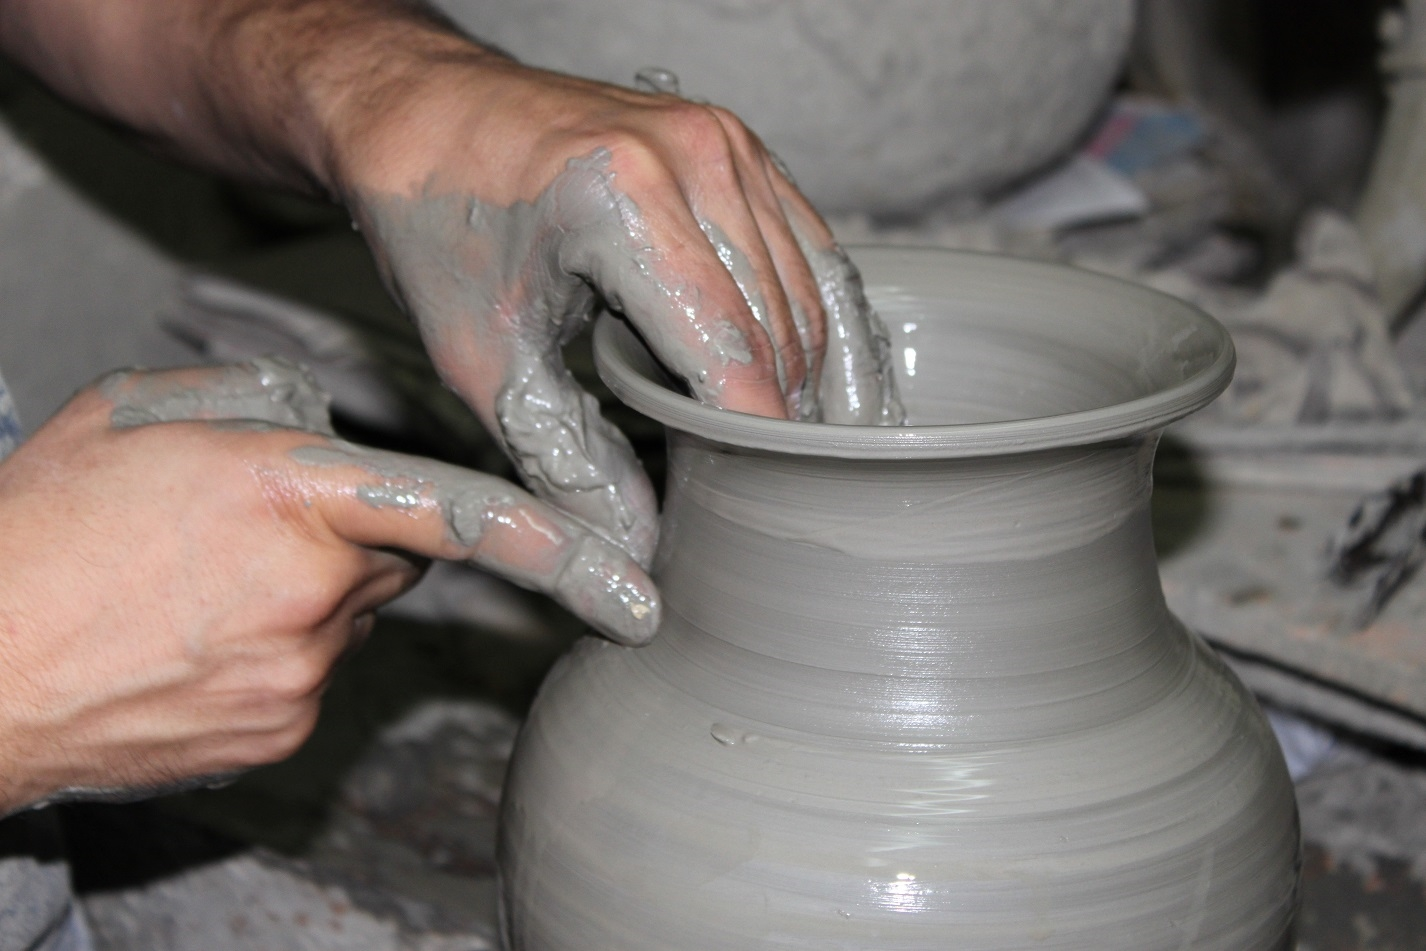 Hand shape and paint your own ceramic creations in an artisan's workshop